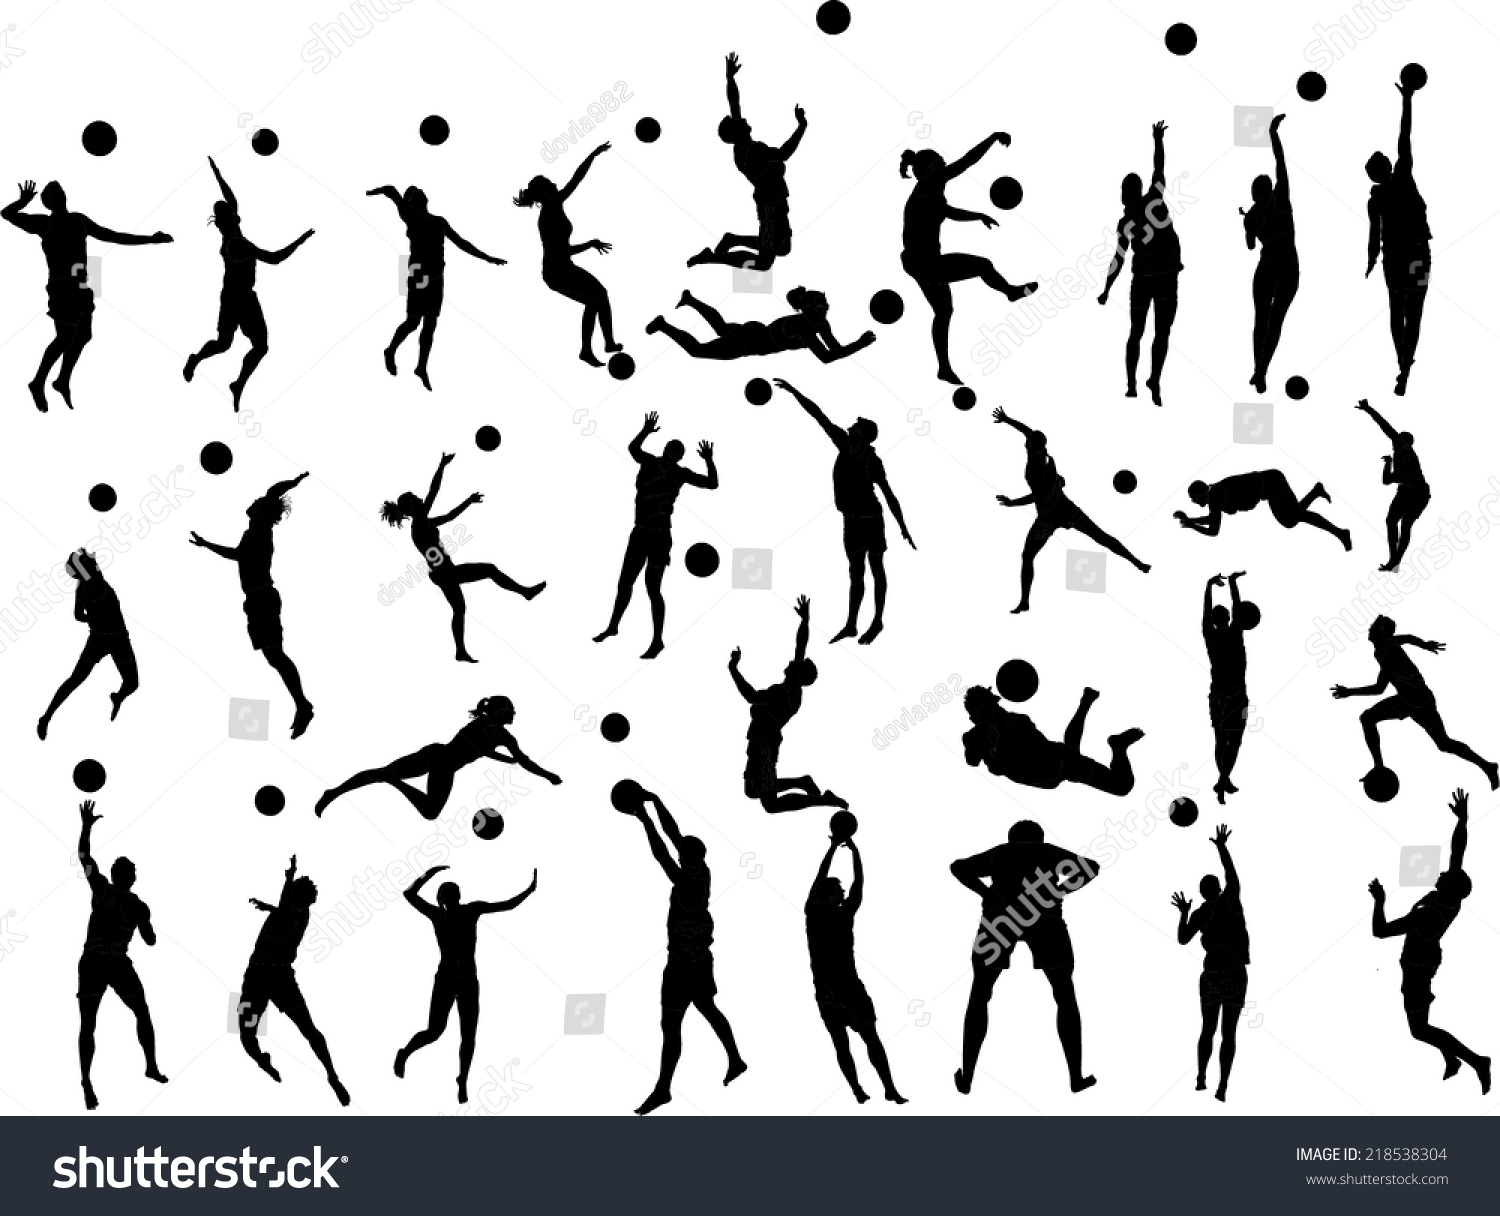 Illustration Abstract Volleyball Player Silhouette: Beach Volleyball Players Vector Silhouette Illustration